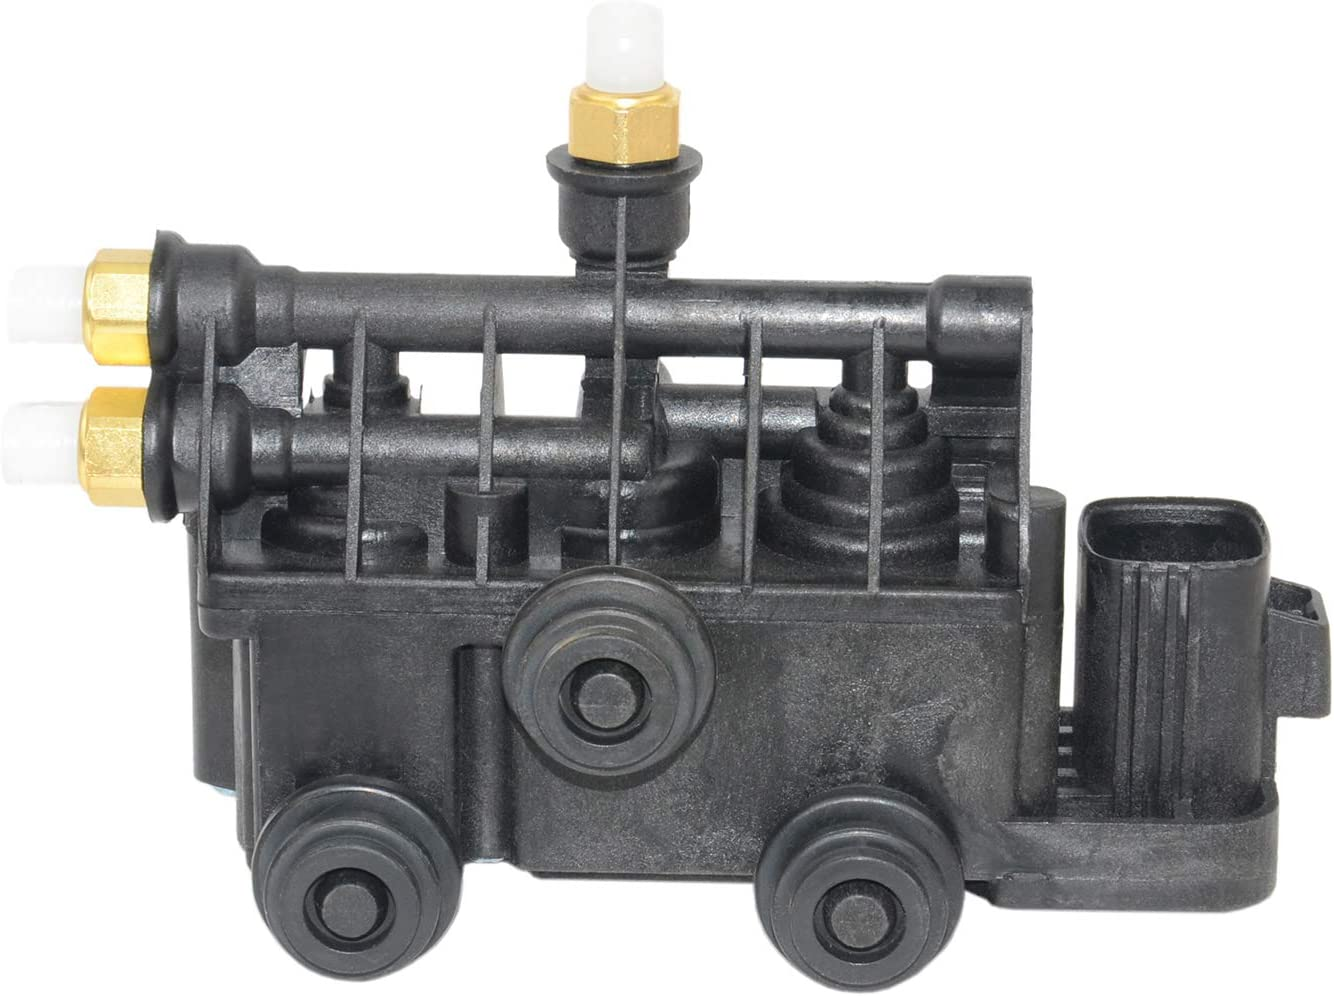 Front Air Suspension EAS Valve Block Fits for La-nd Range Rover Sport LR3 LR4 RVH000095